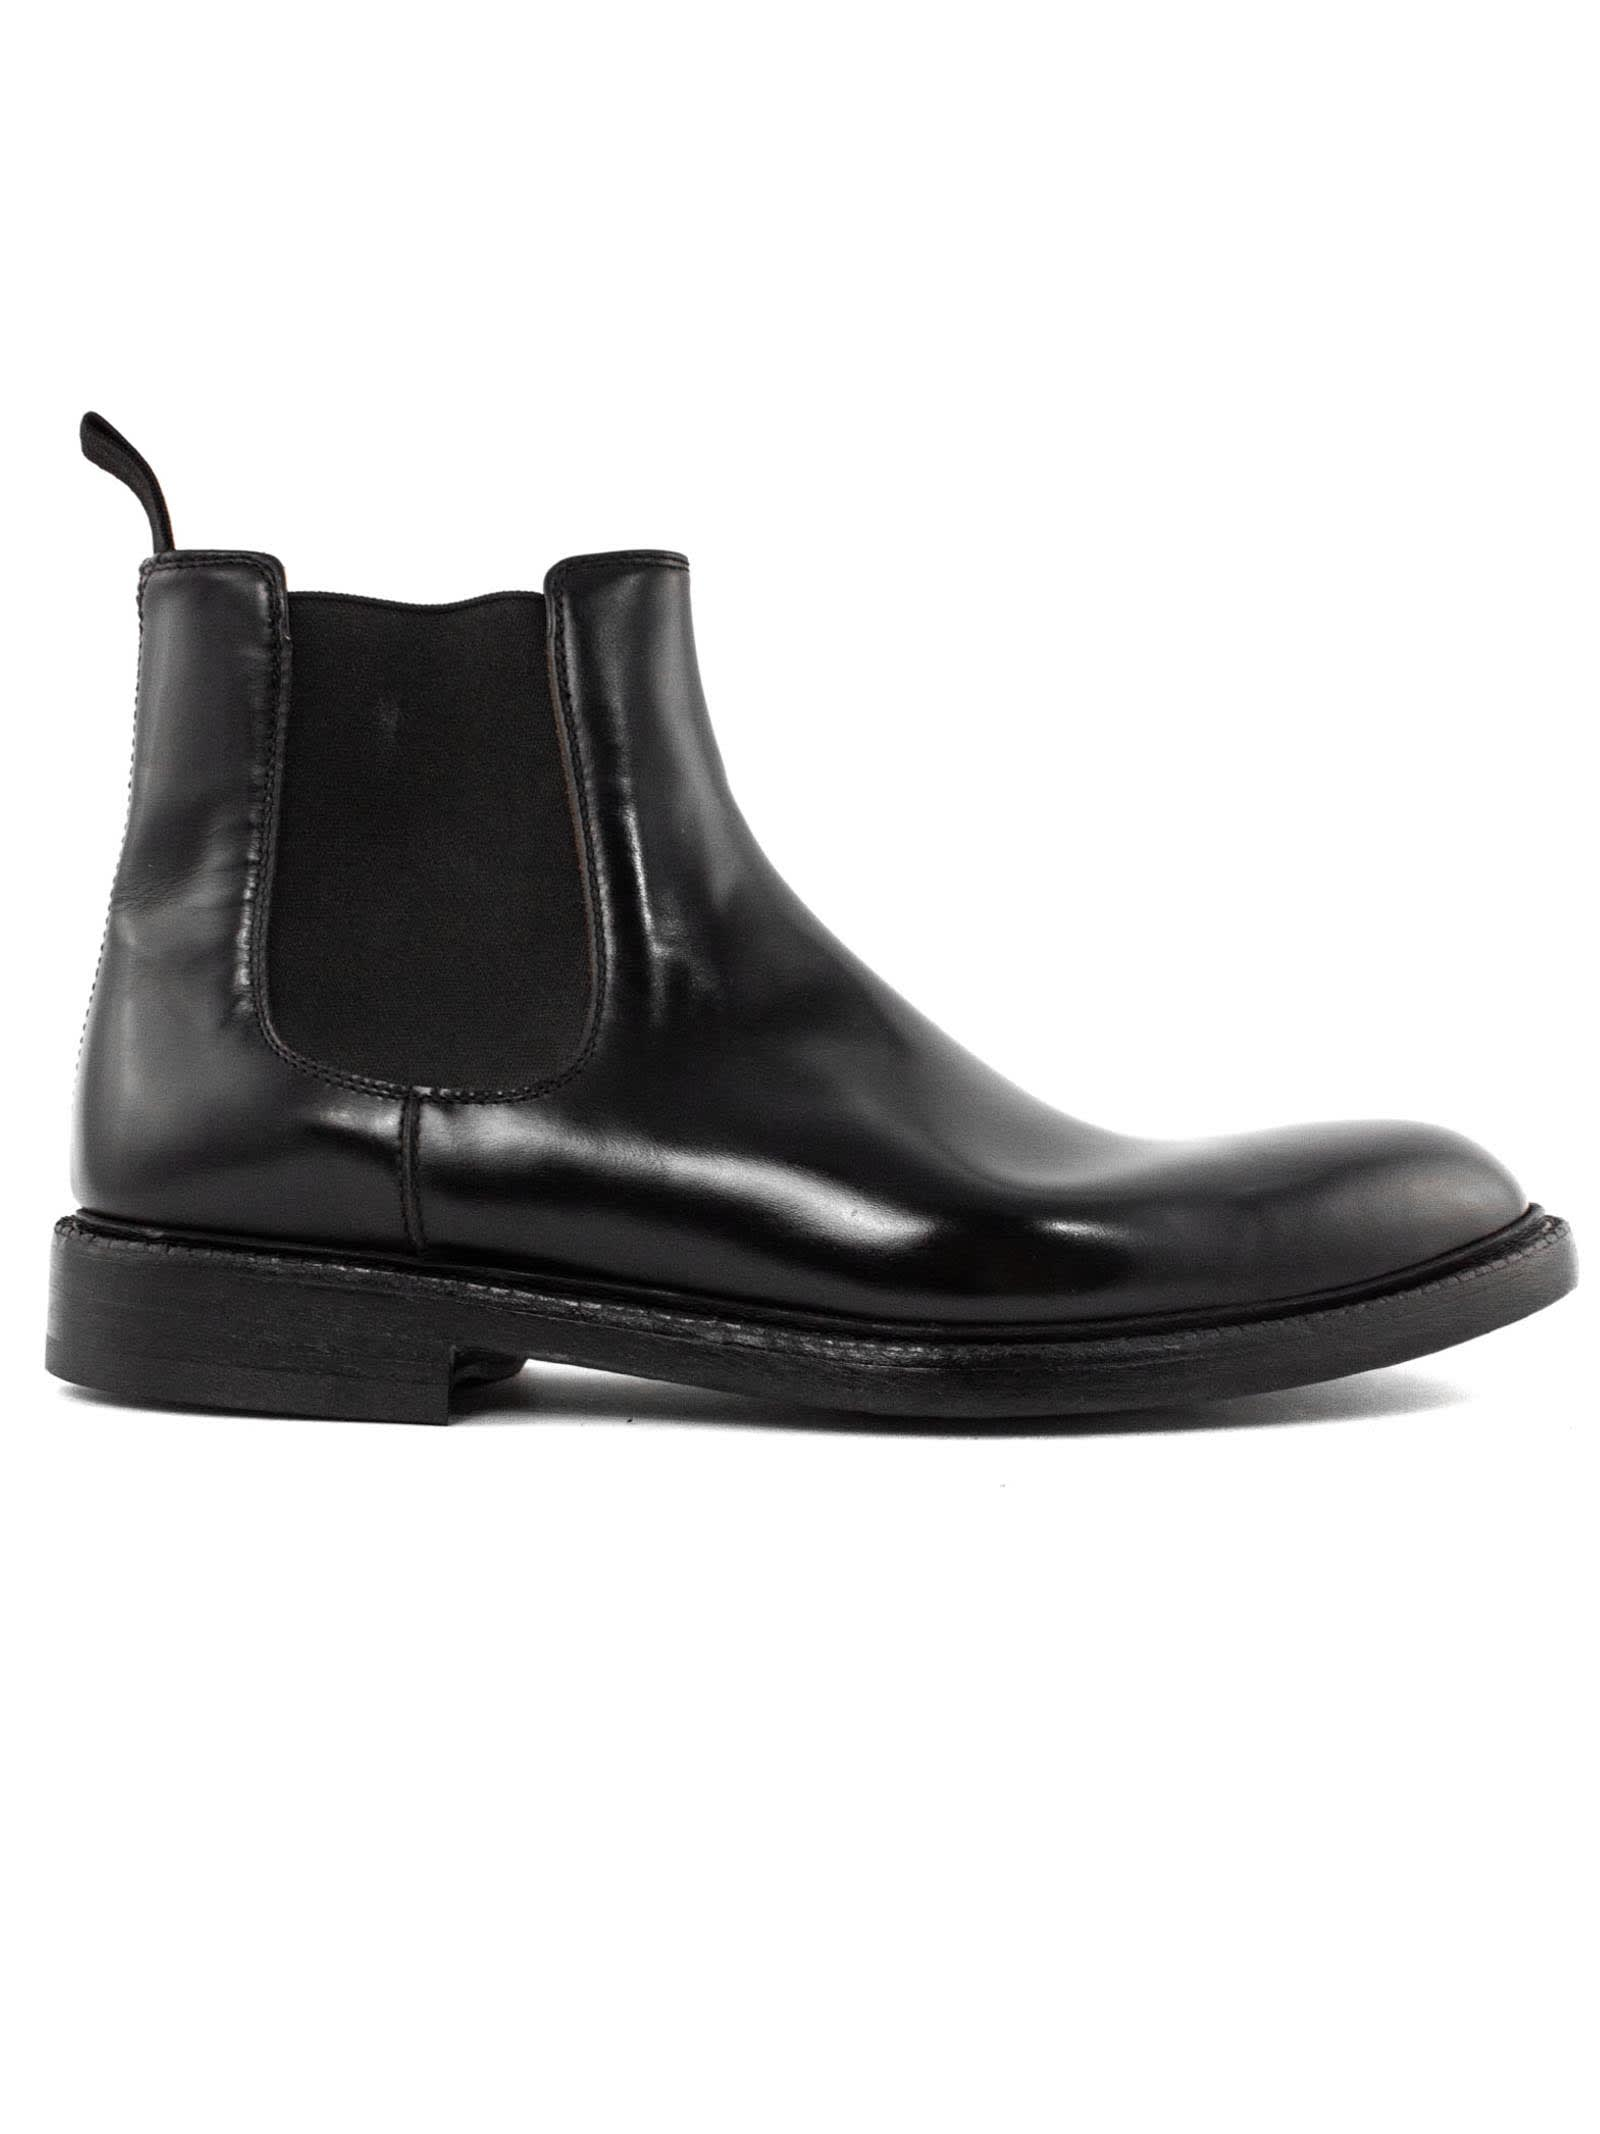 Black Smooth Leather Ankle Boot